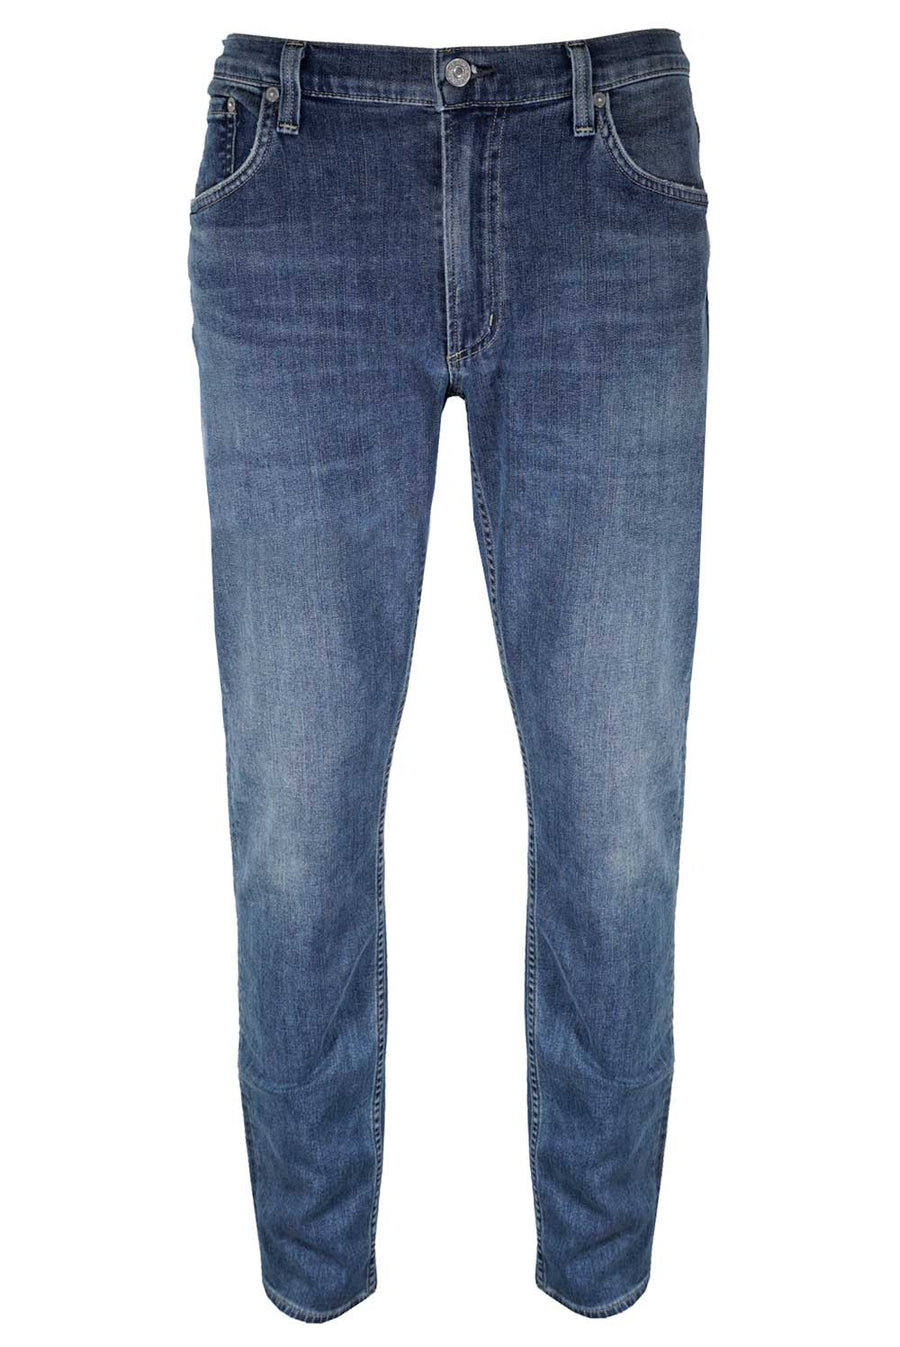 straight, bowery, citizens, mens denim, denim